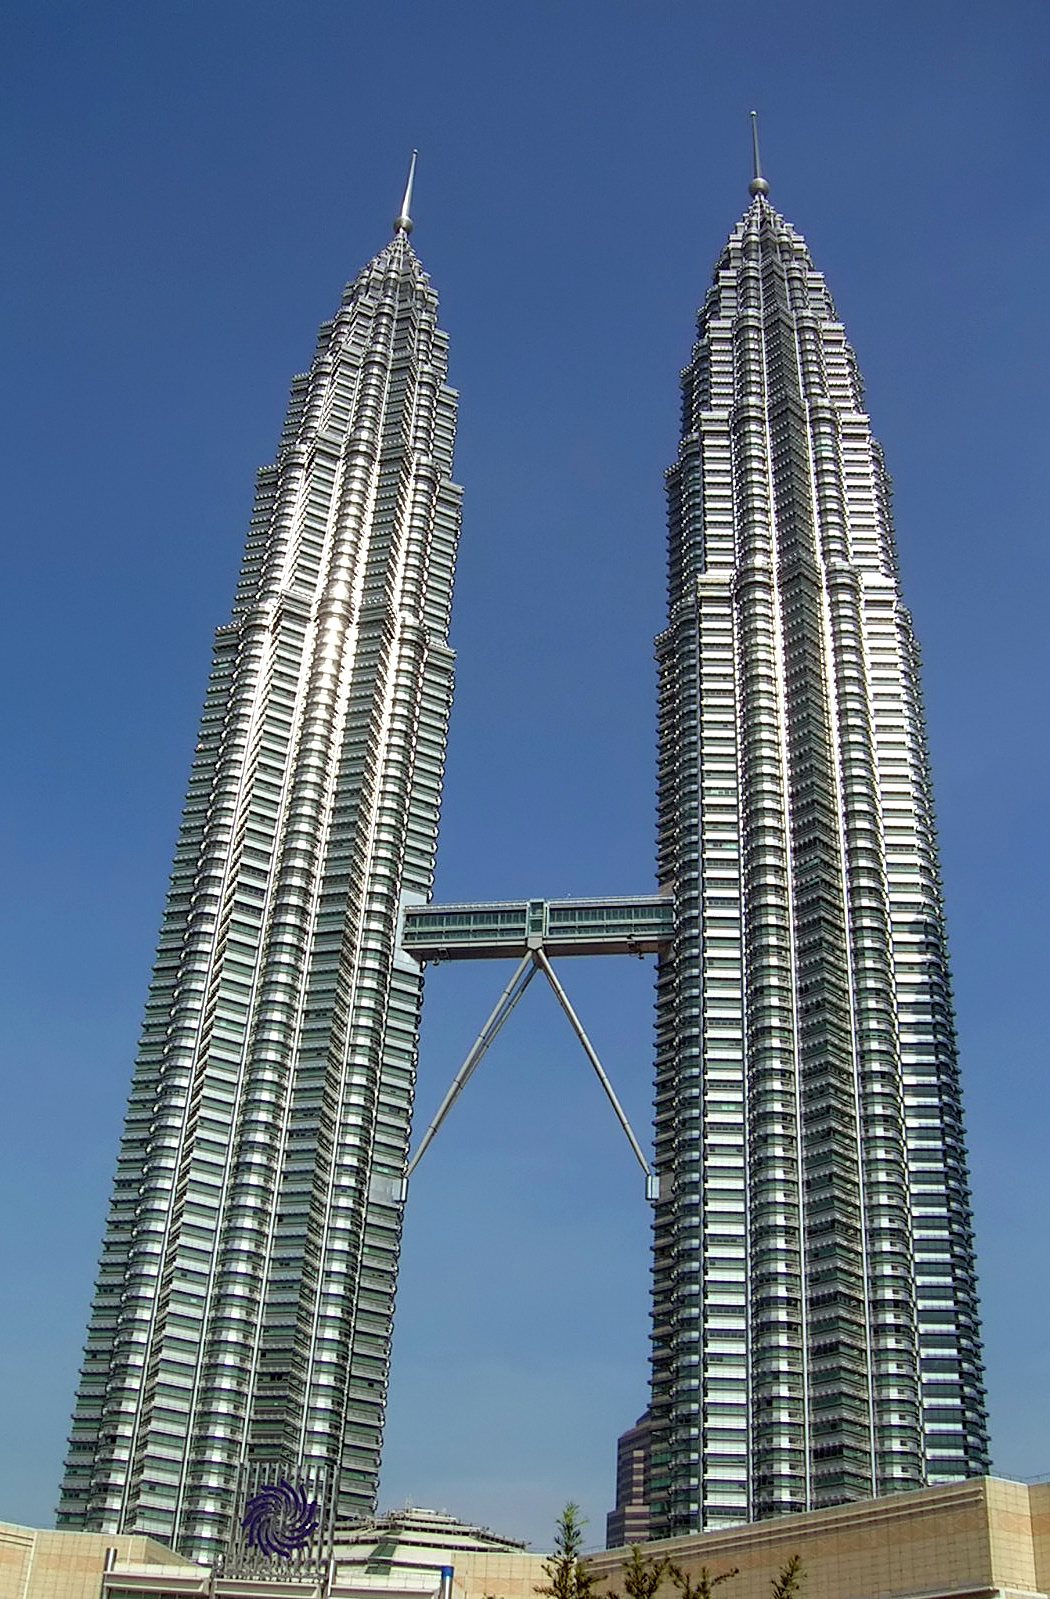 the twin towers Find great deals on ebay for twin towers in buildings fair historical memorabilia shop with confidence.